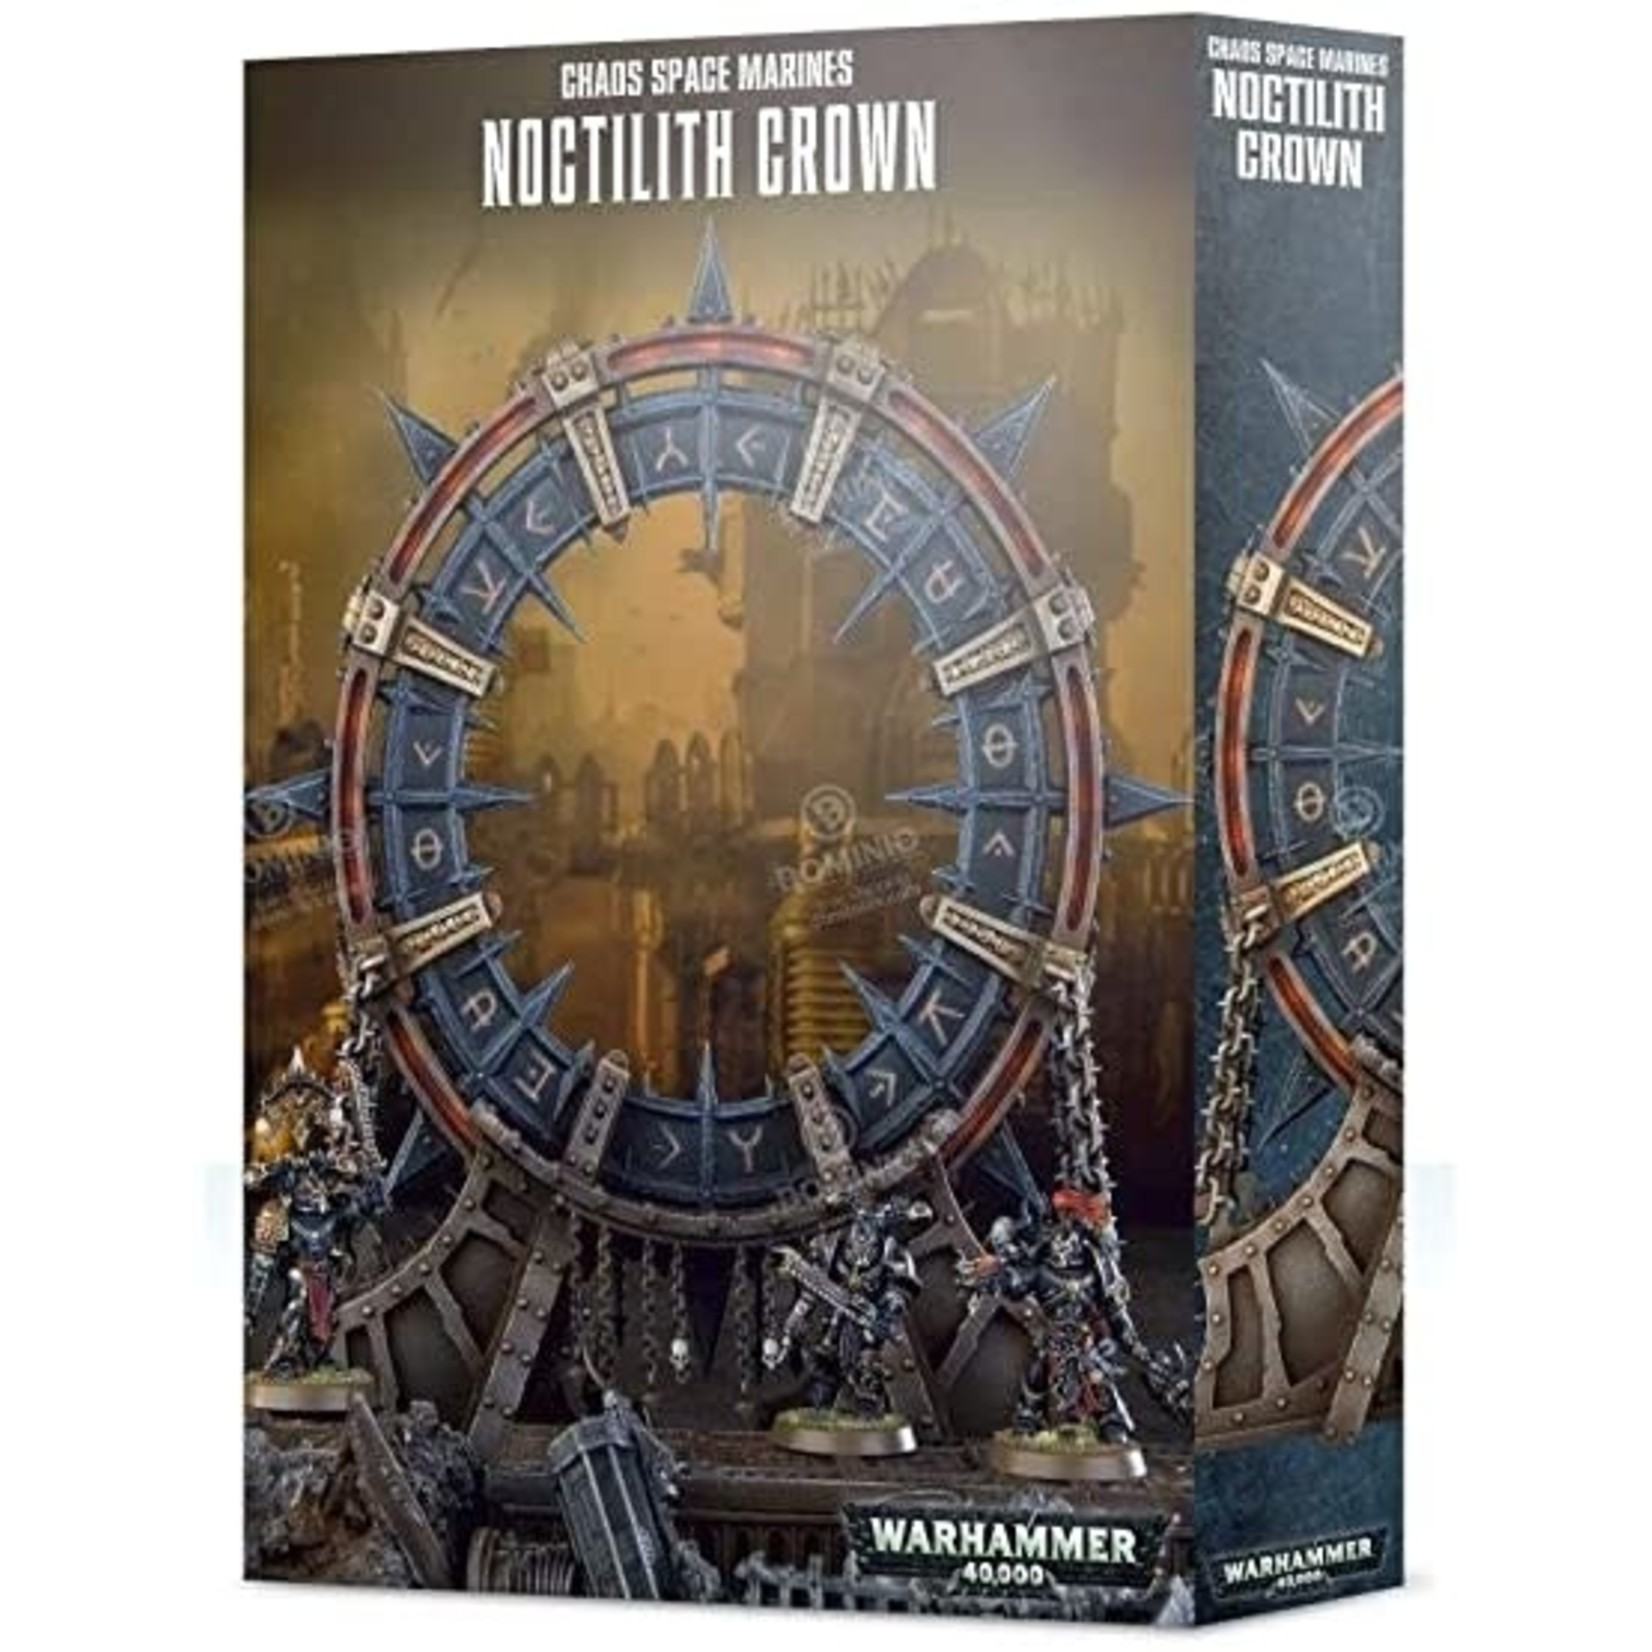 Chaos Space Marines Noctilith Crown (40K)